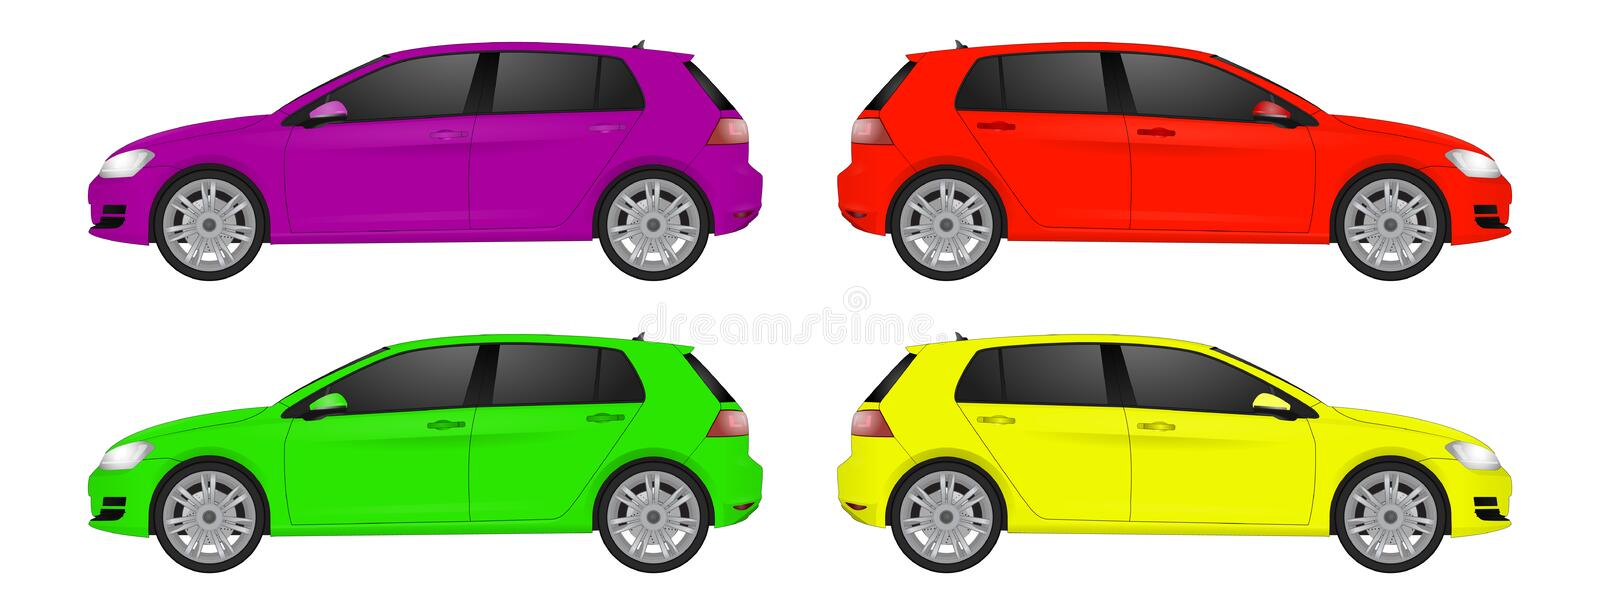 Super car realistic art side view. Generic automobile. royalty free illustration